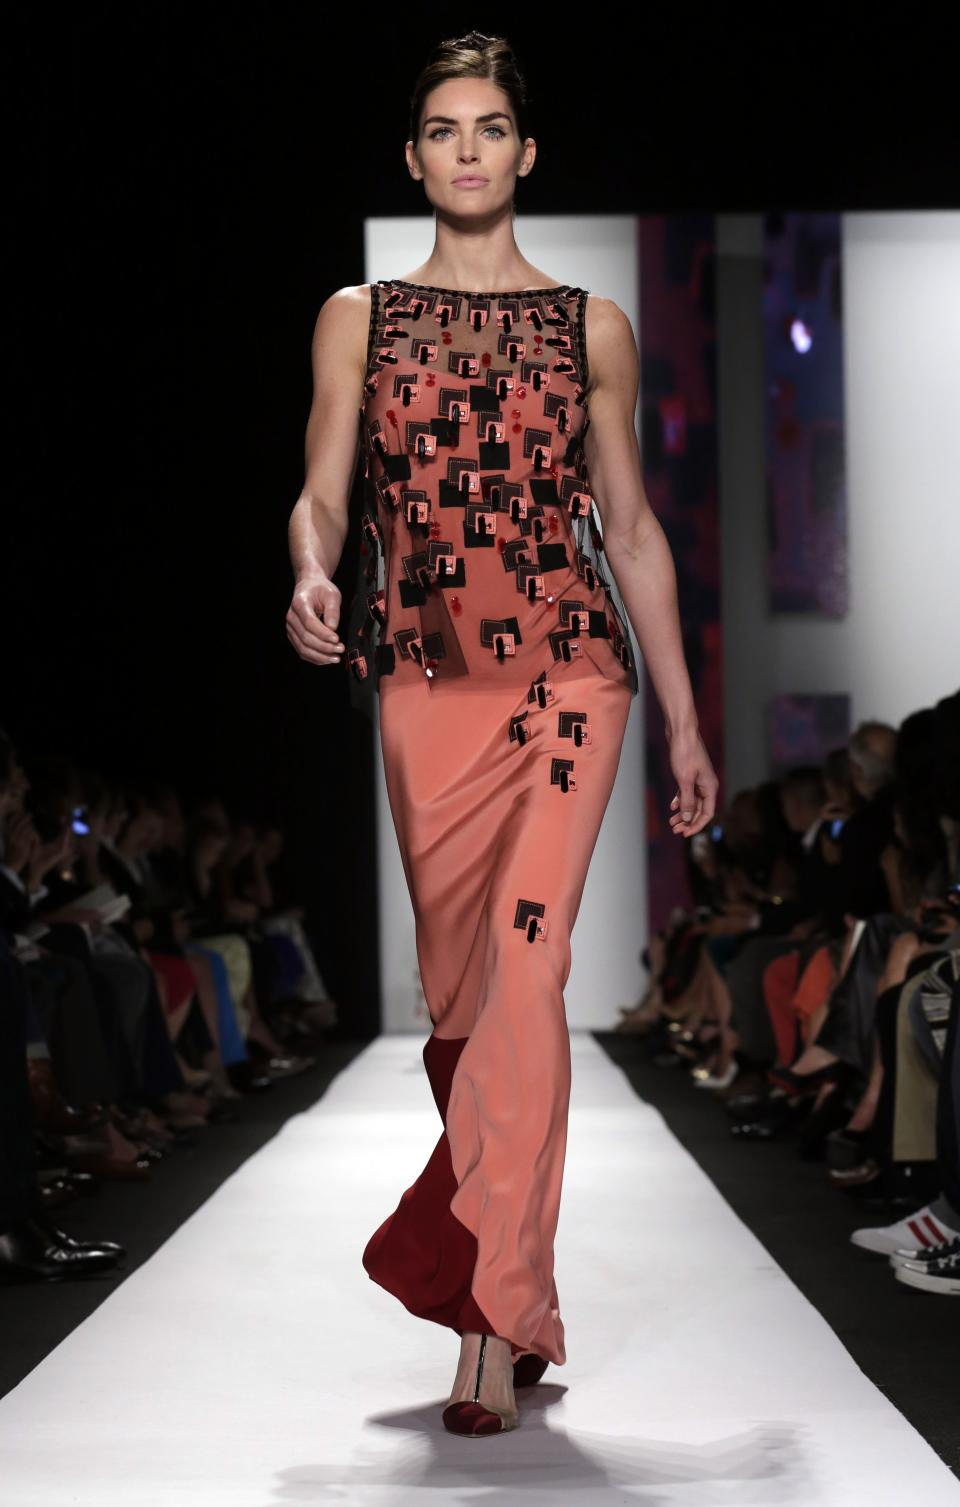 The Carolina Herrera Spring 2014 collection is modeled during Fashion Week in New York, Monday, Sept. 9, 2013. (AP Photo/Richard Drew)